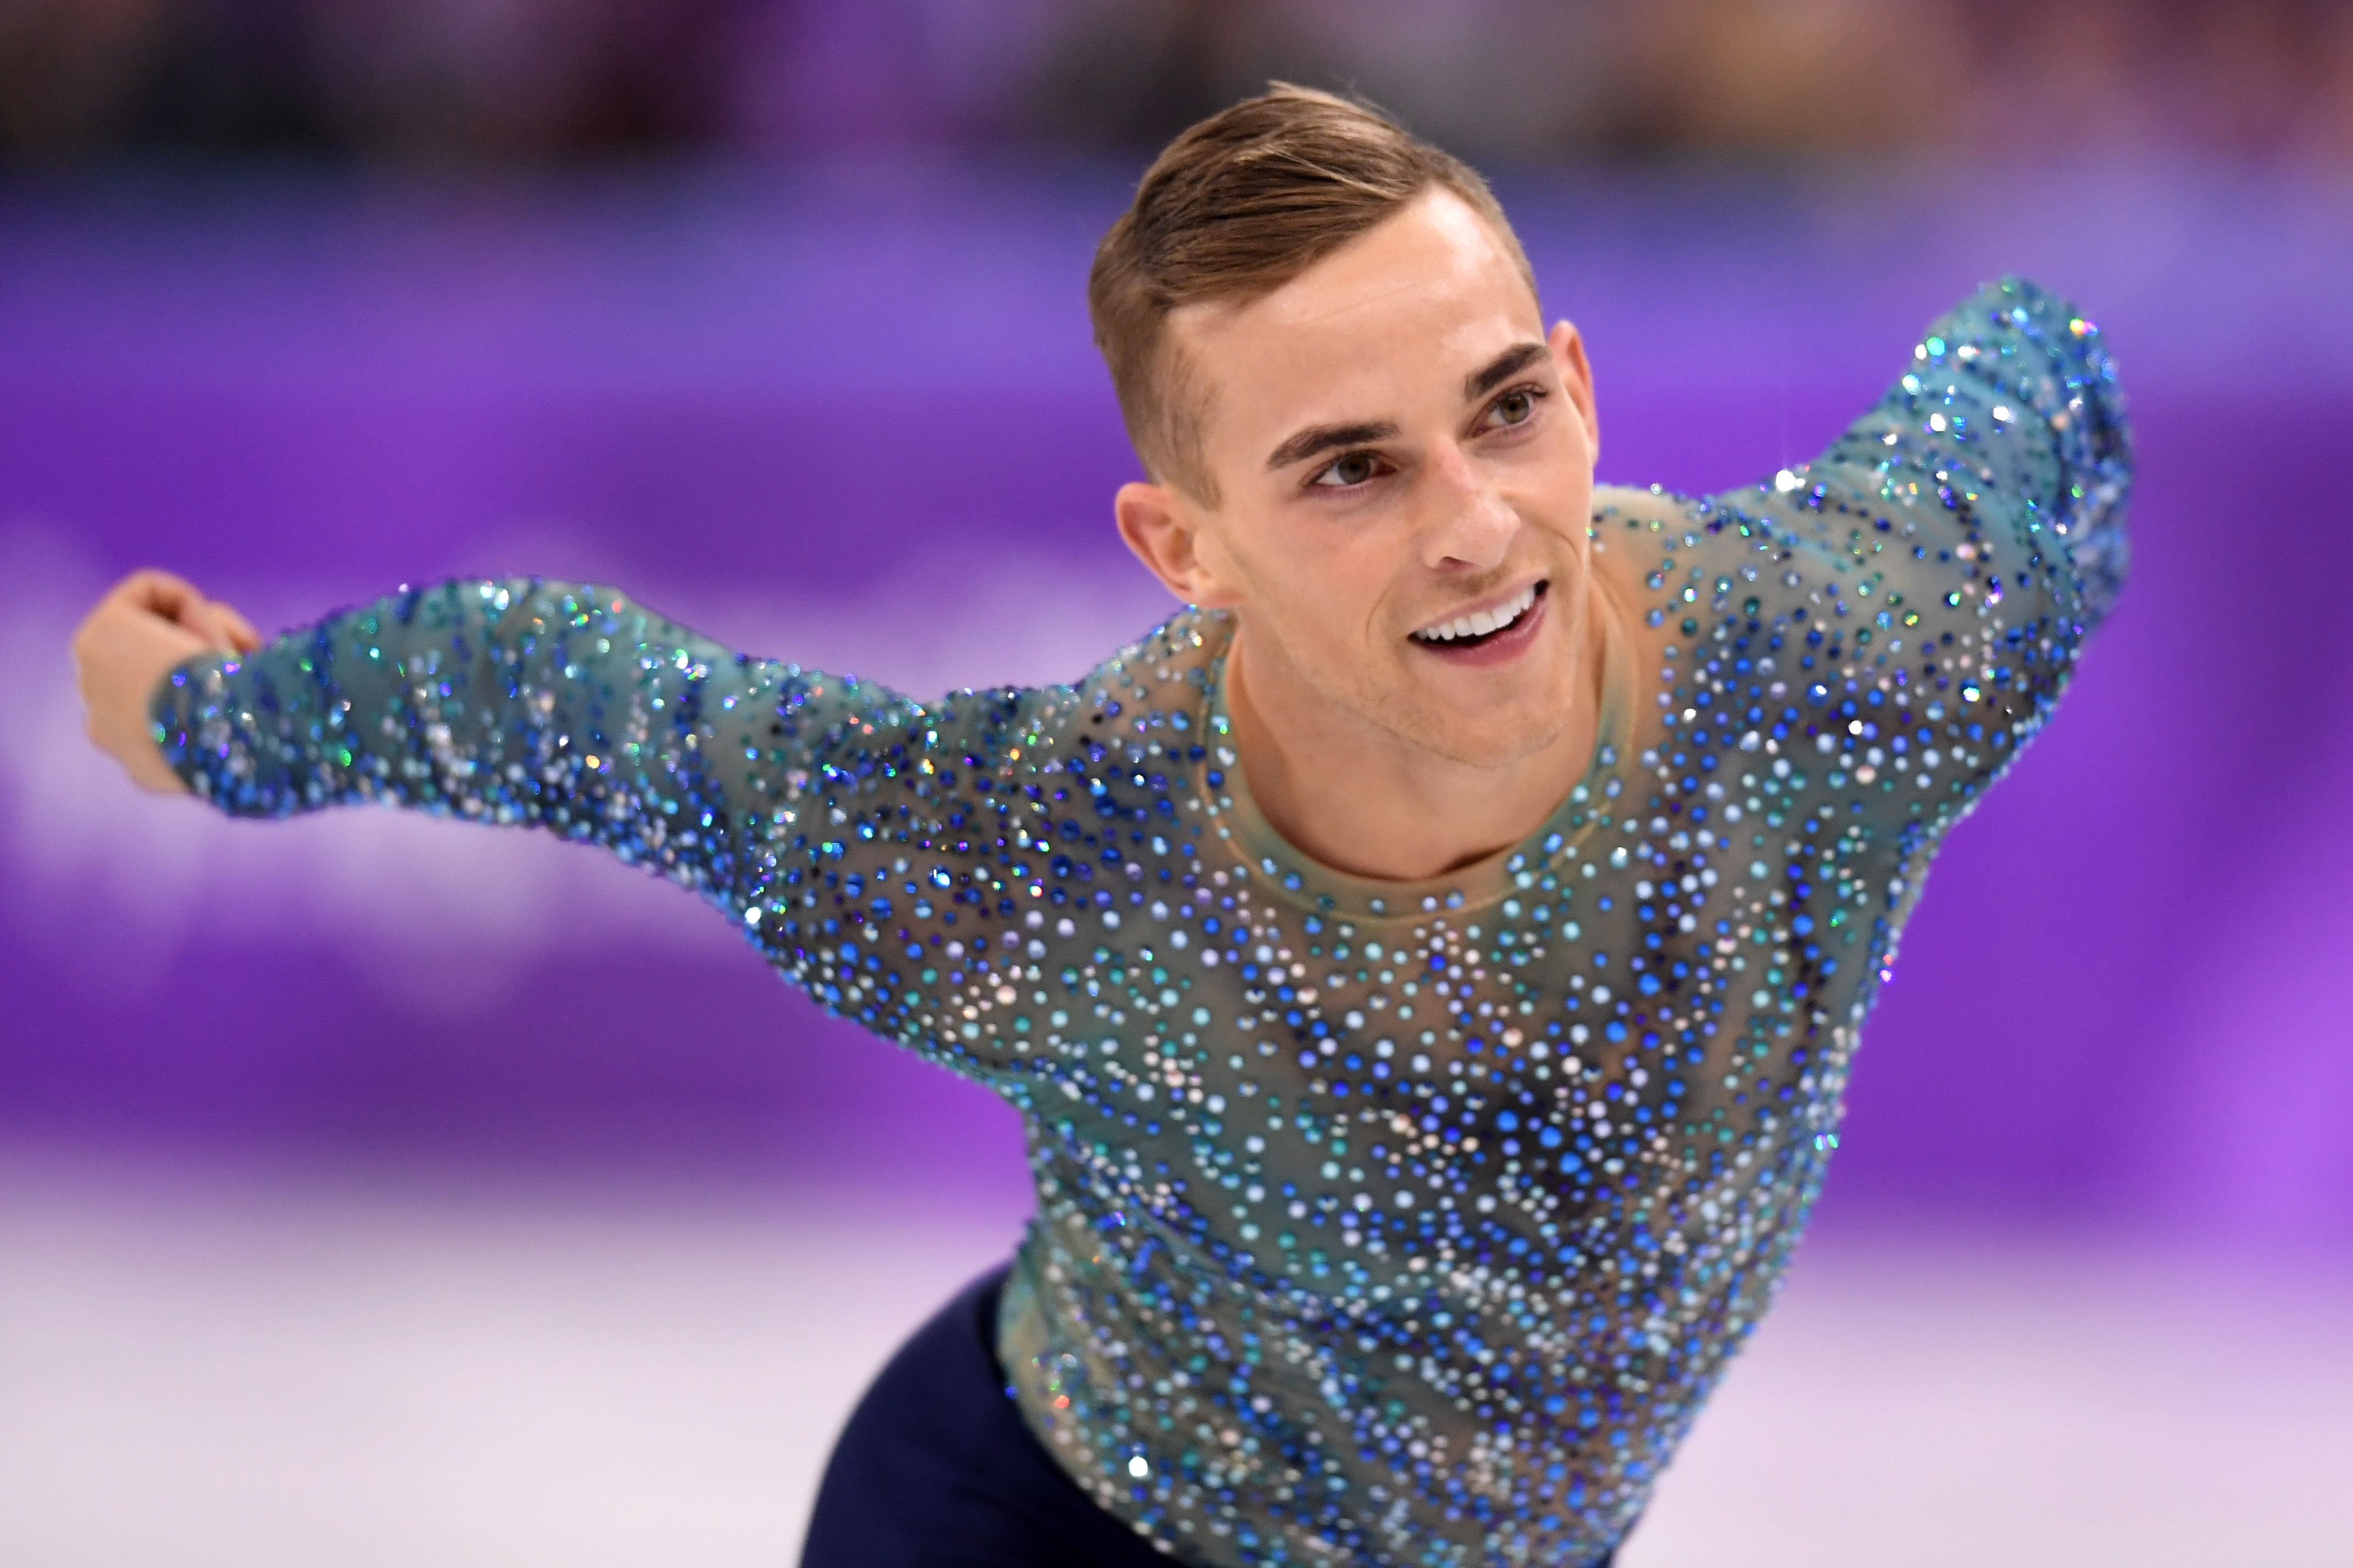 Adam Rippon of the United States competes during the Men's Single Free Program on day eight of the PyeongChang 2018 Winter Olympic Games  at Gangneung Ice Arena on February 17, 2018 in Gangneung, South Korea.